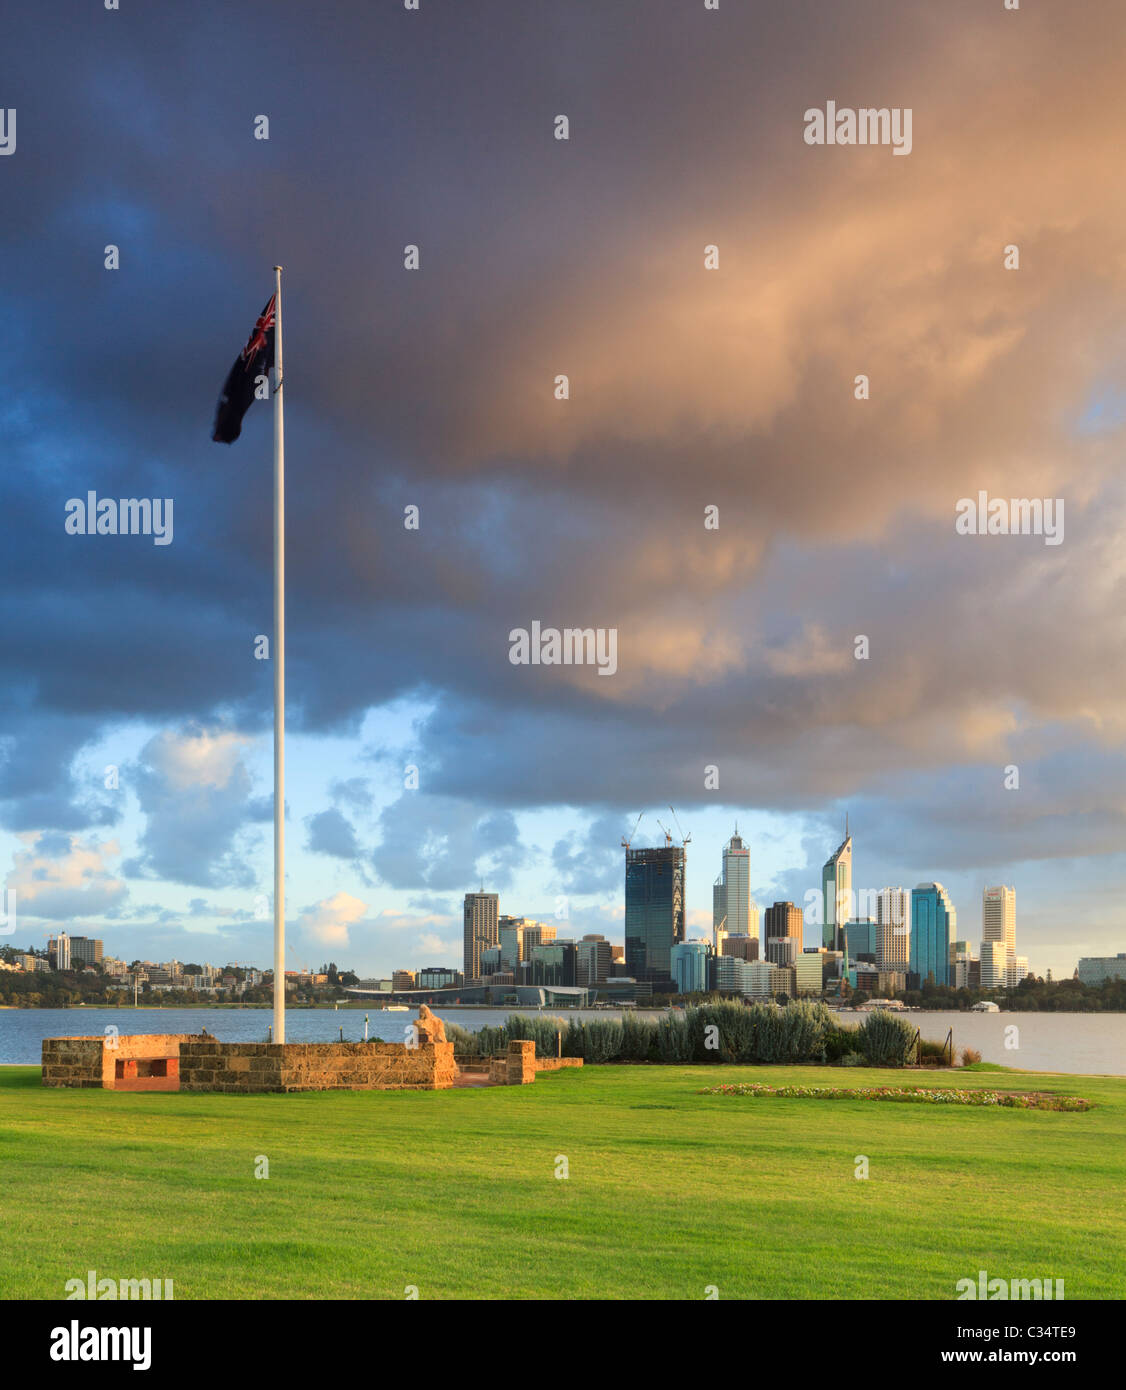 Australian Flag in Sir James Mitchell Park, South Perth flying over Perth city at sunrise. - Stock Image